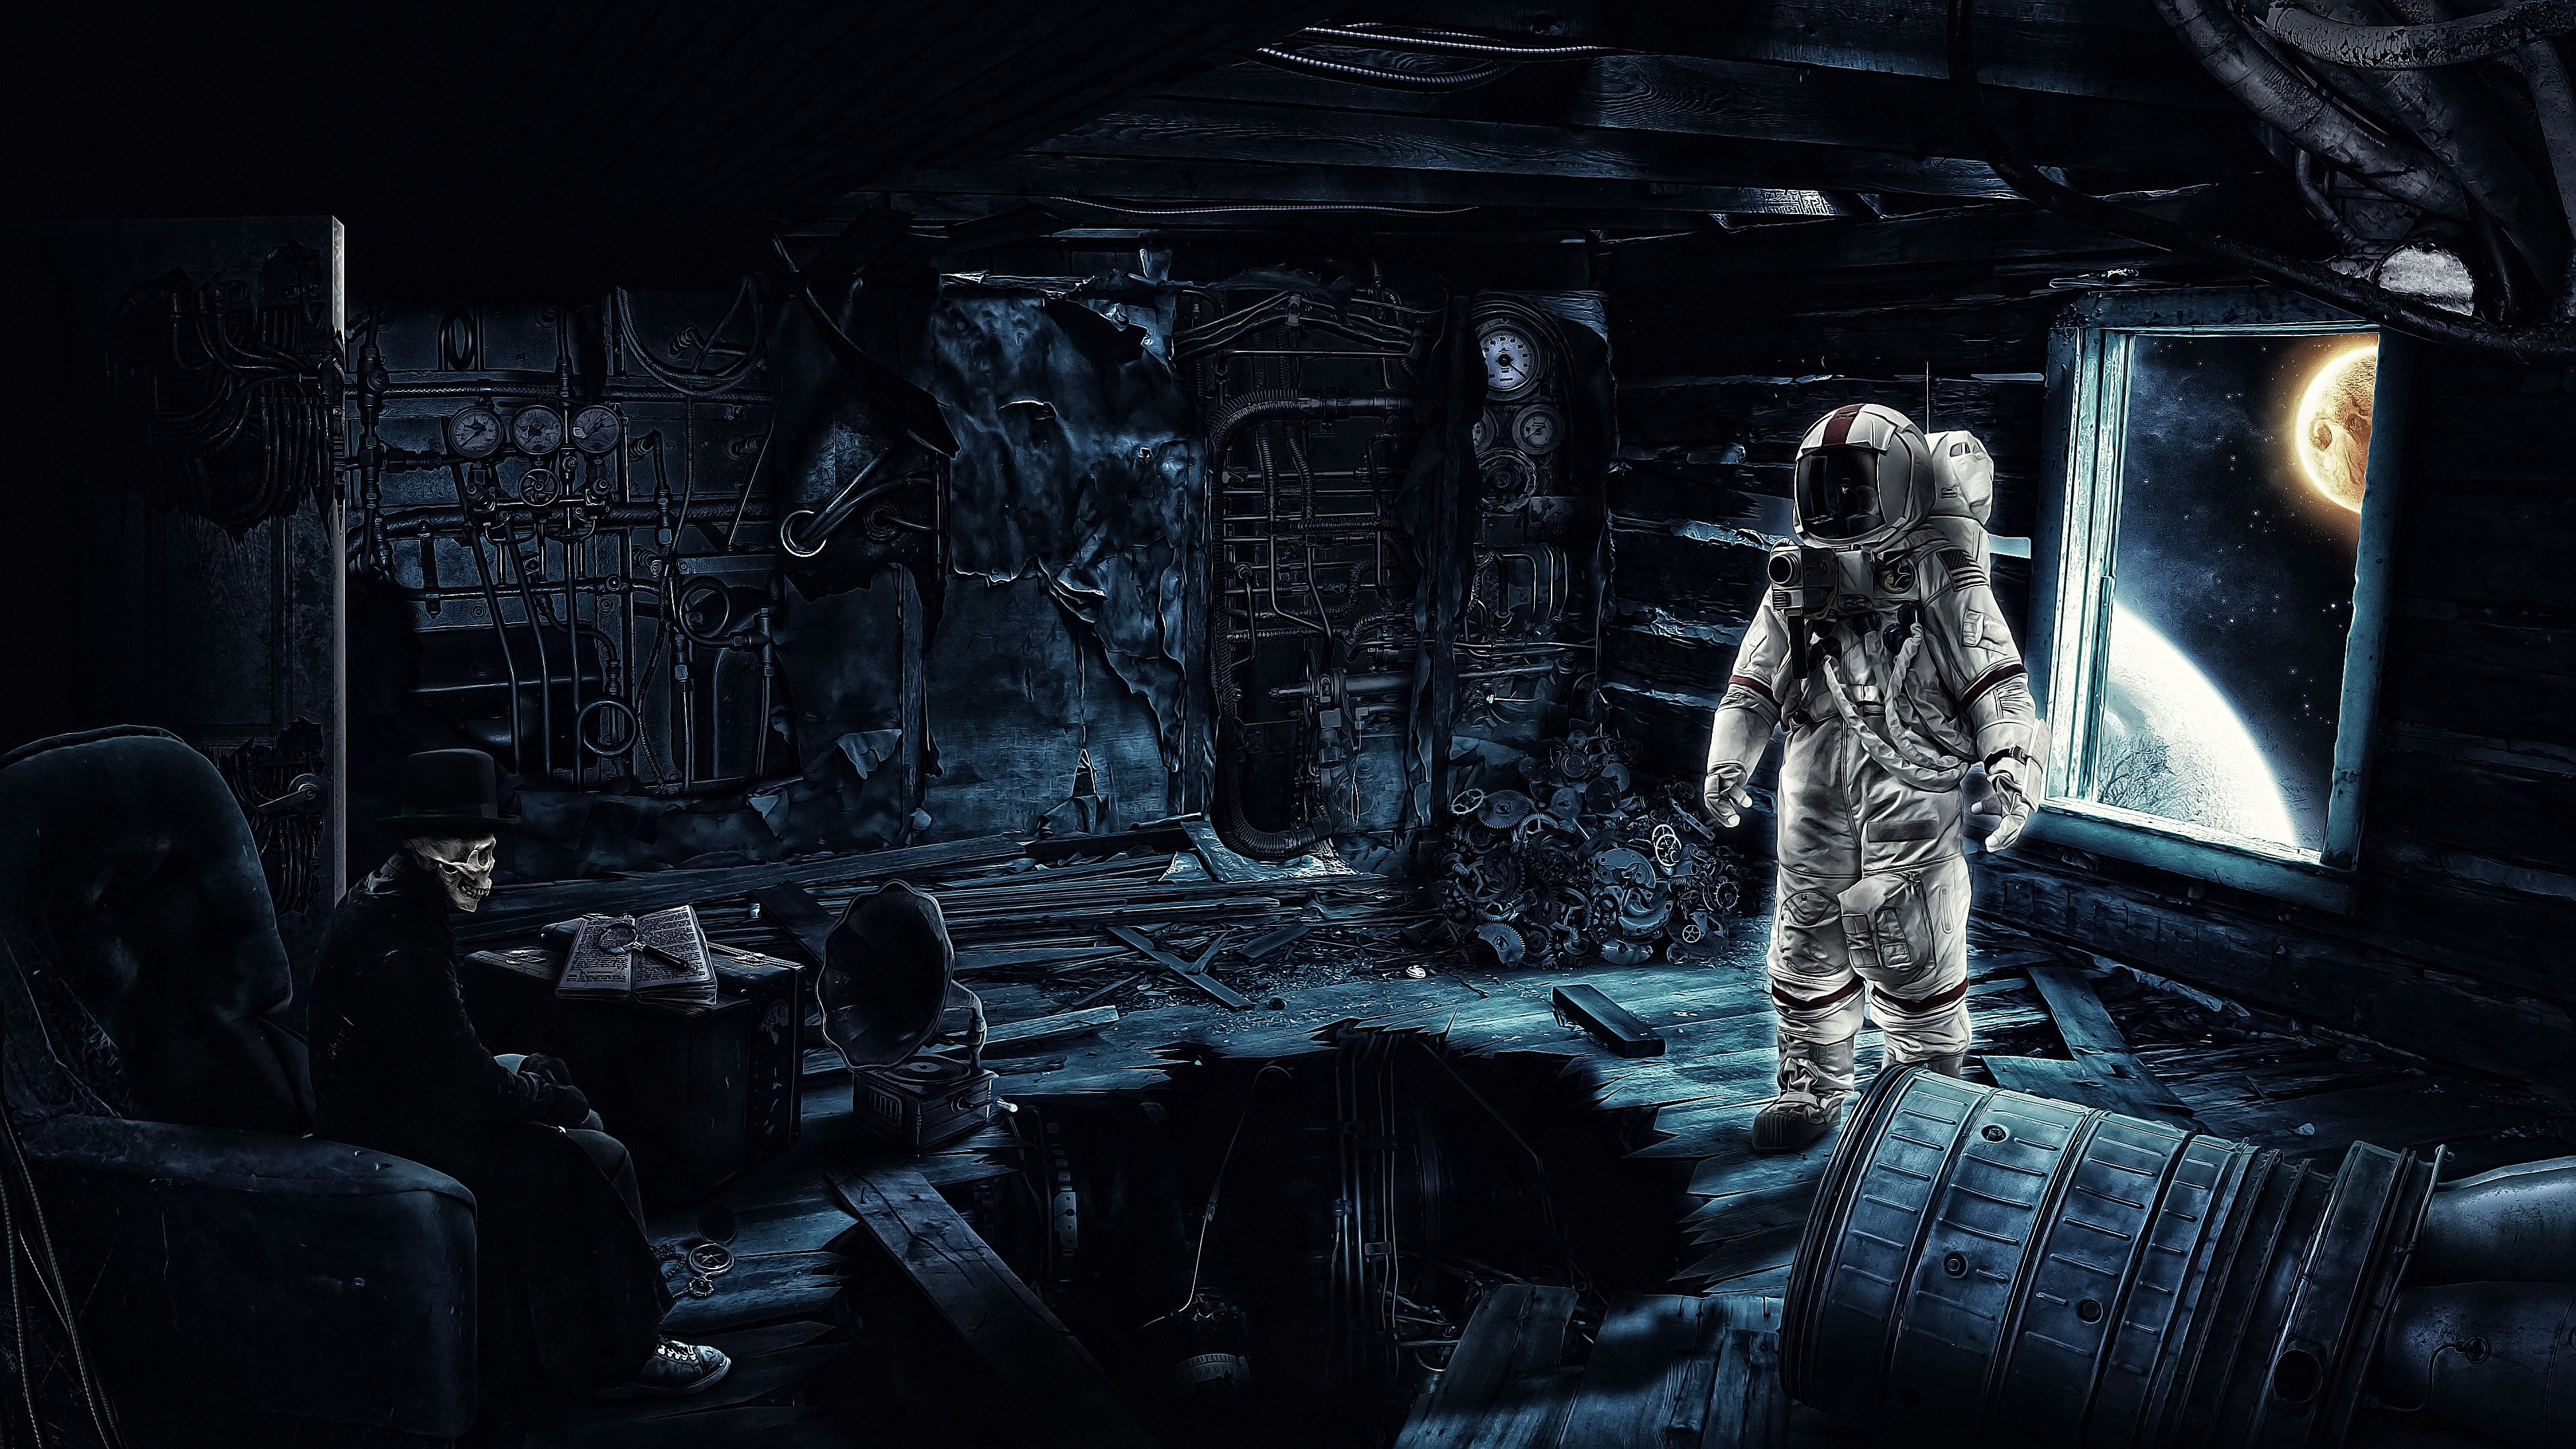 3840x2160 228 Astronaut HD Wallpapers   Background Images - Wallpaper Abyss